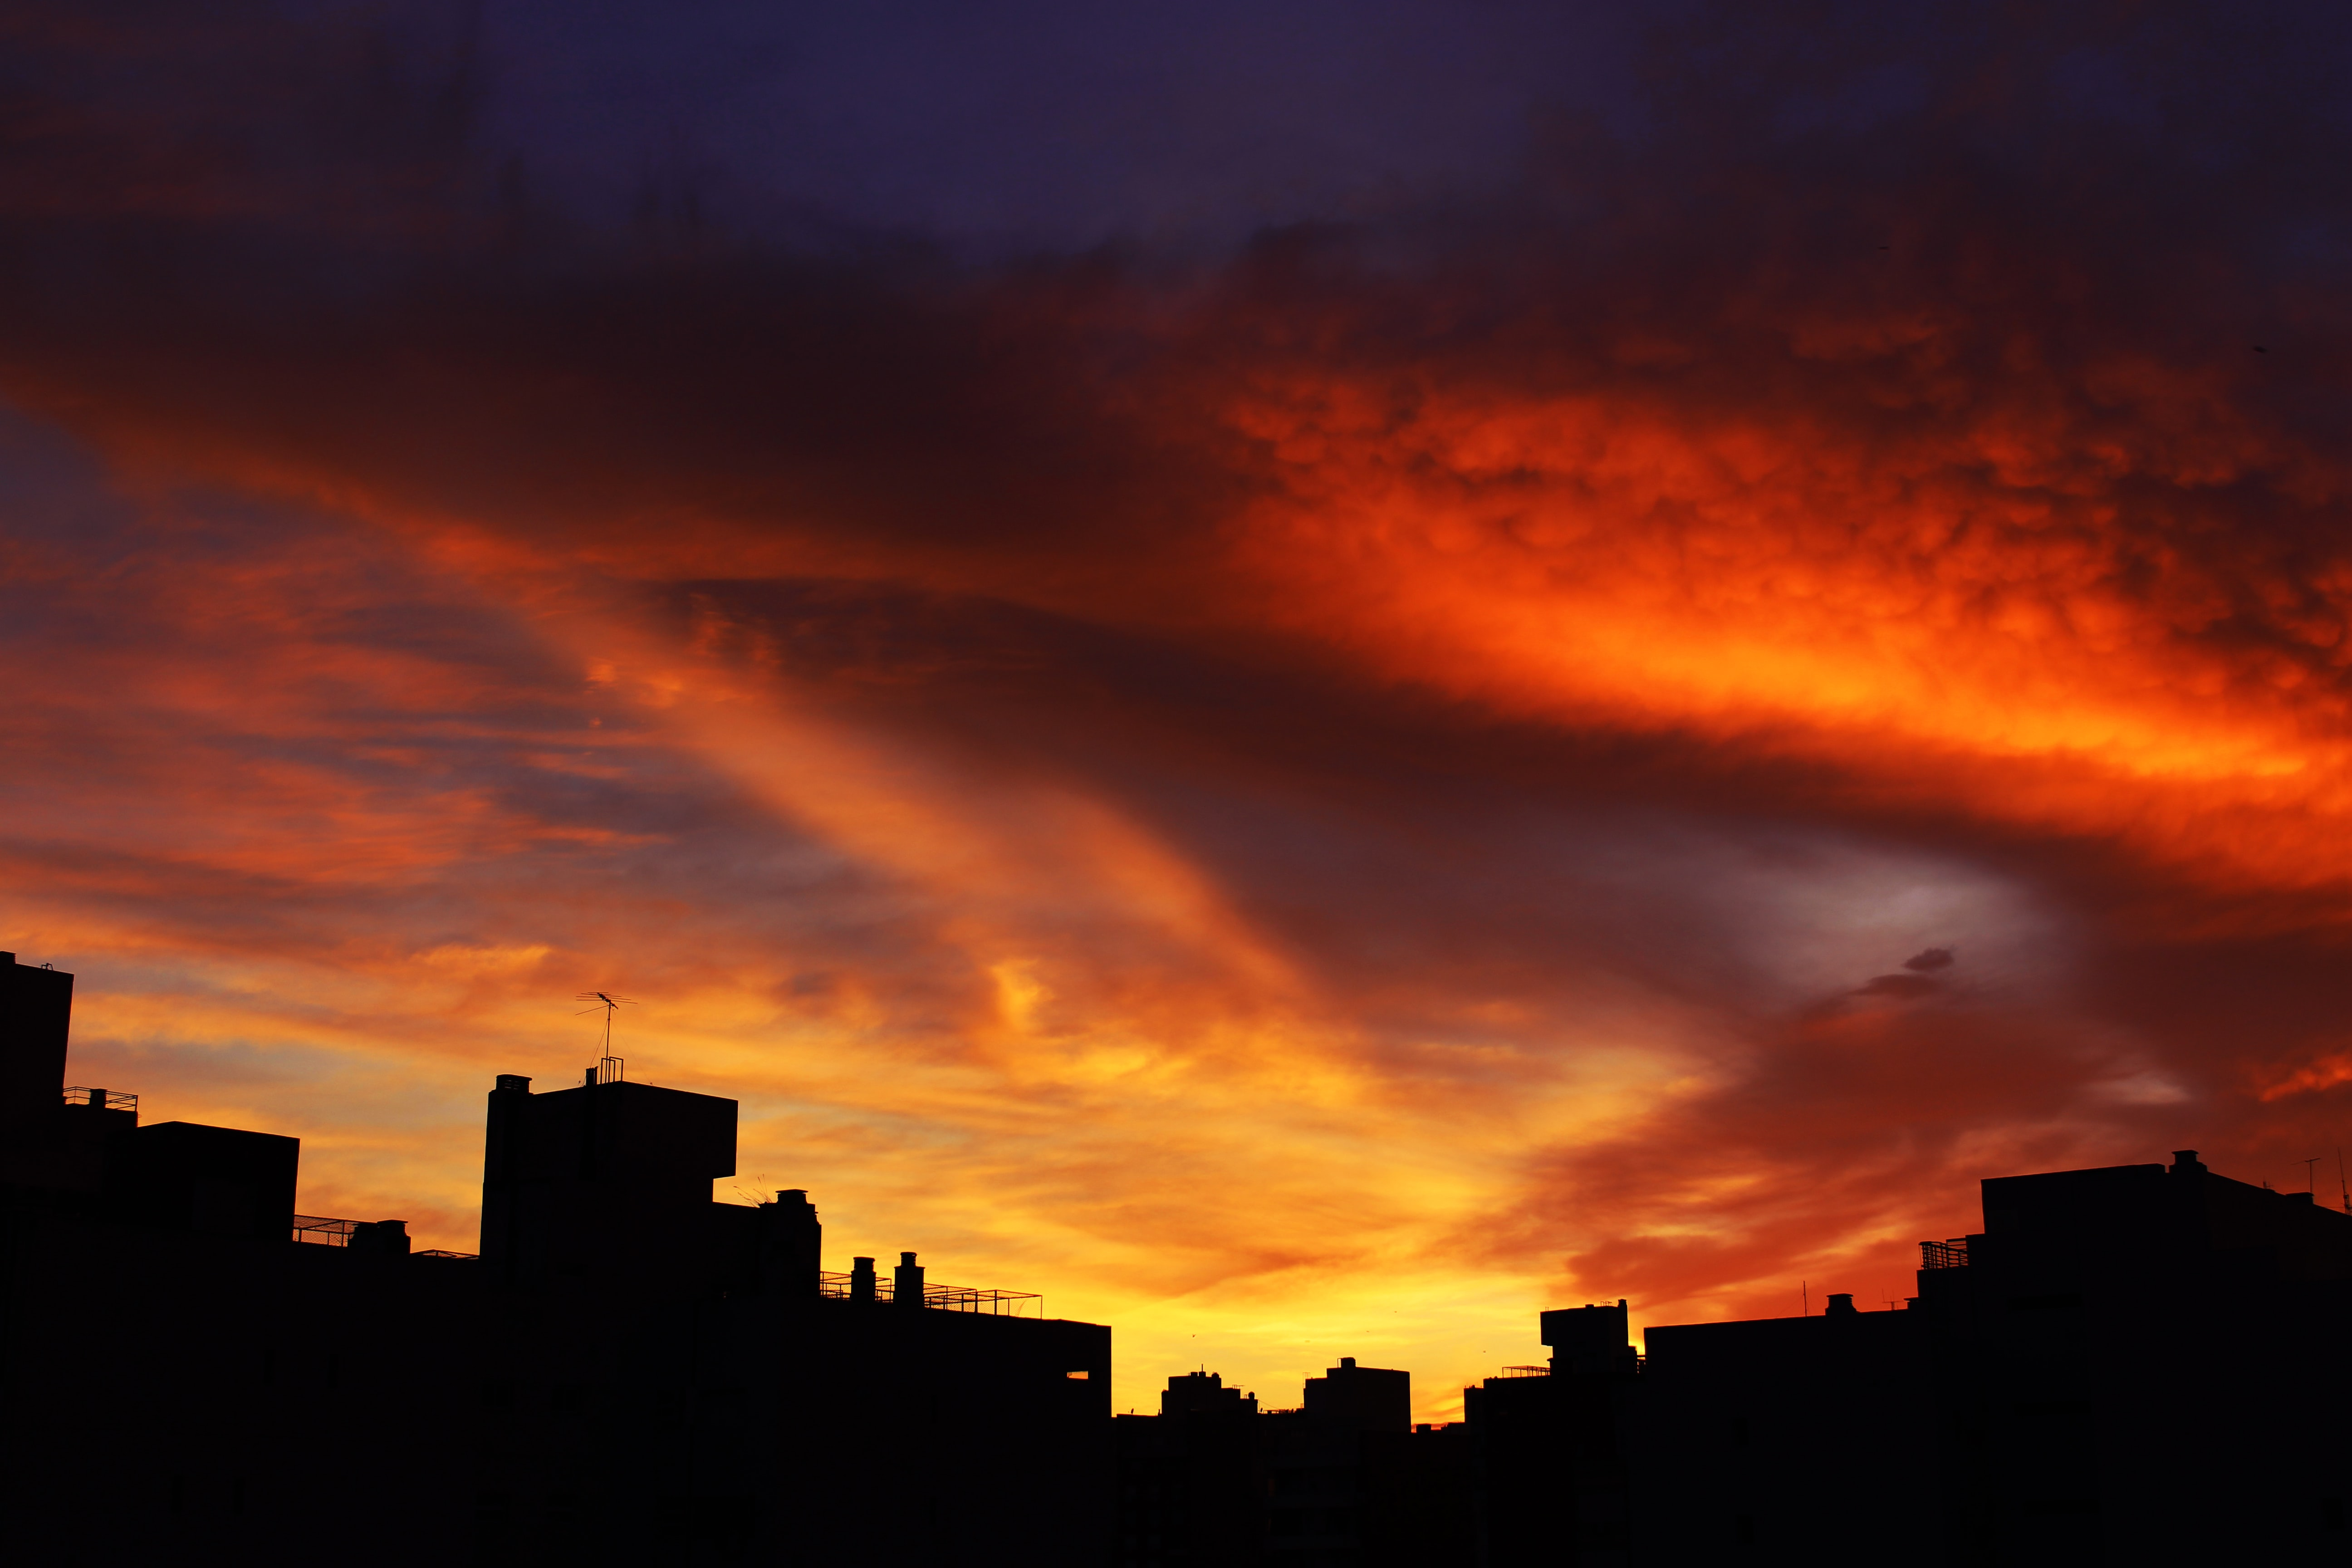 Red and orange dark sunset with purple clouds at twilight with the cityscape in silhouette.